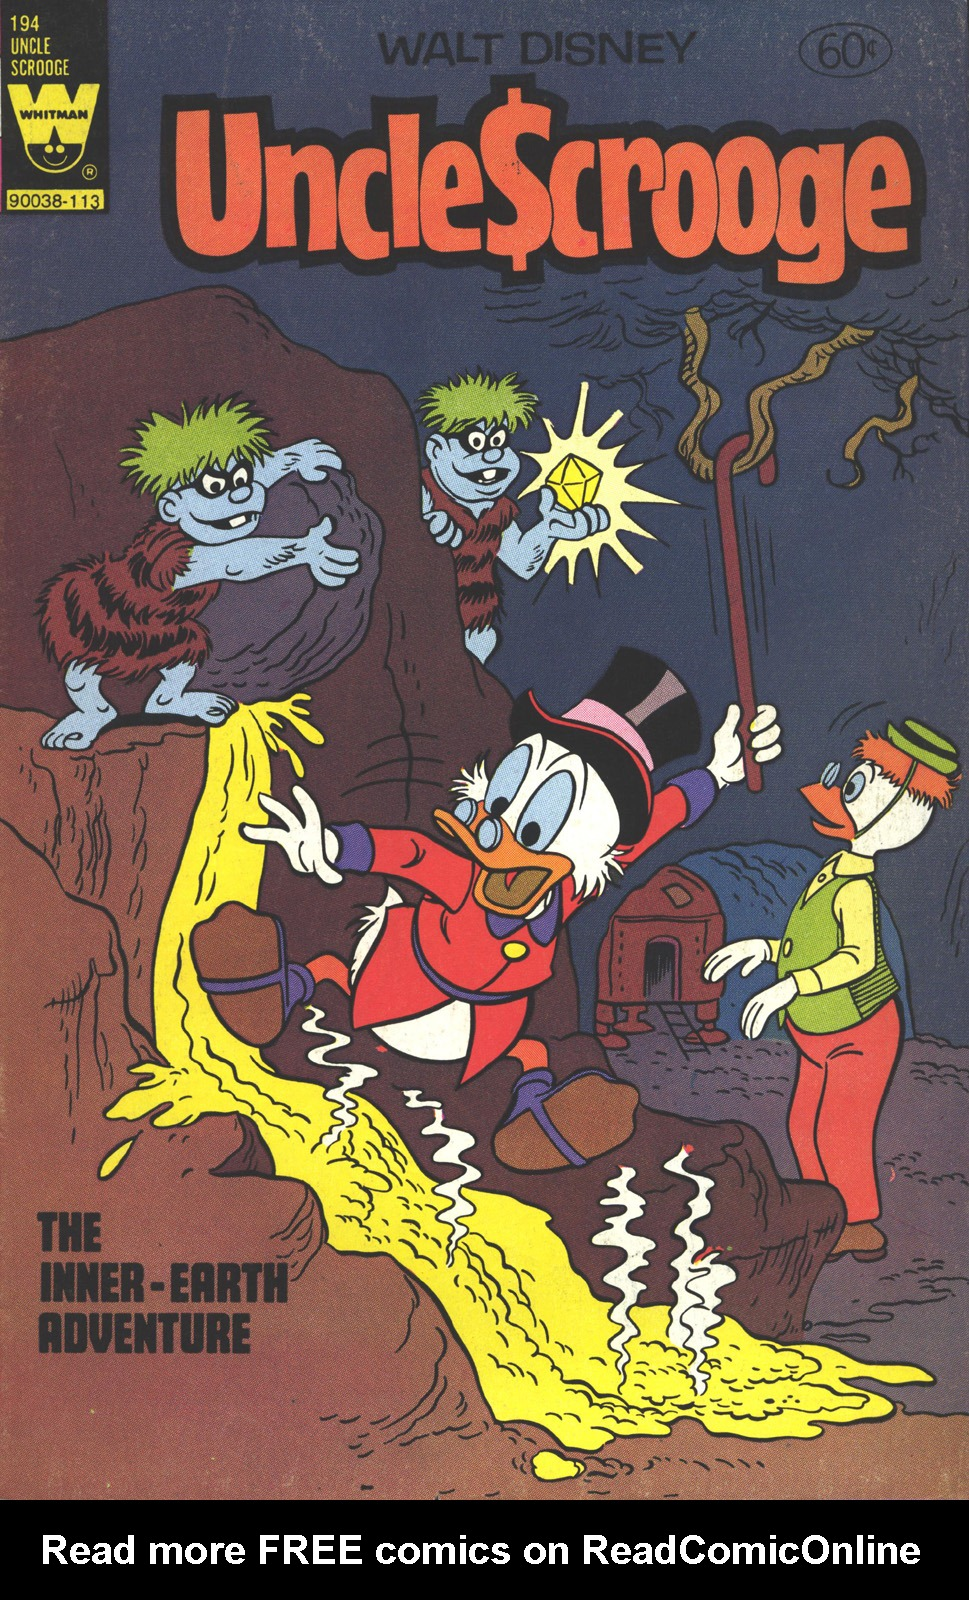 Uncle Scrooge (1953) Issue #194 #194 - English 1